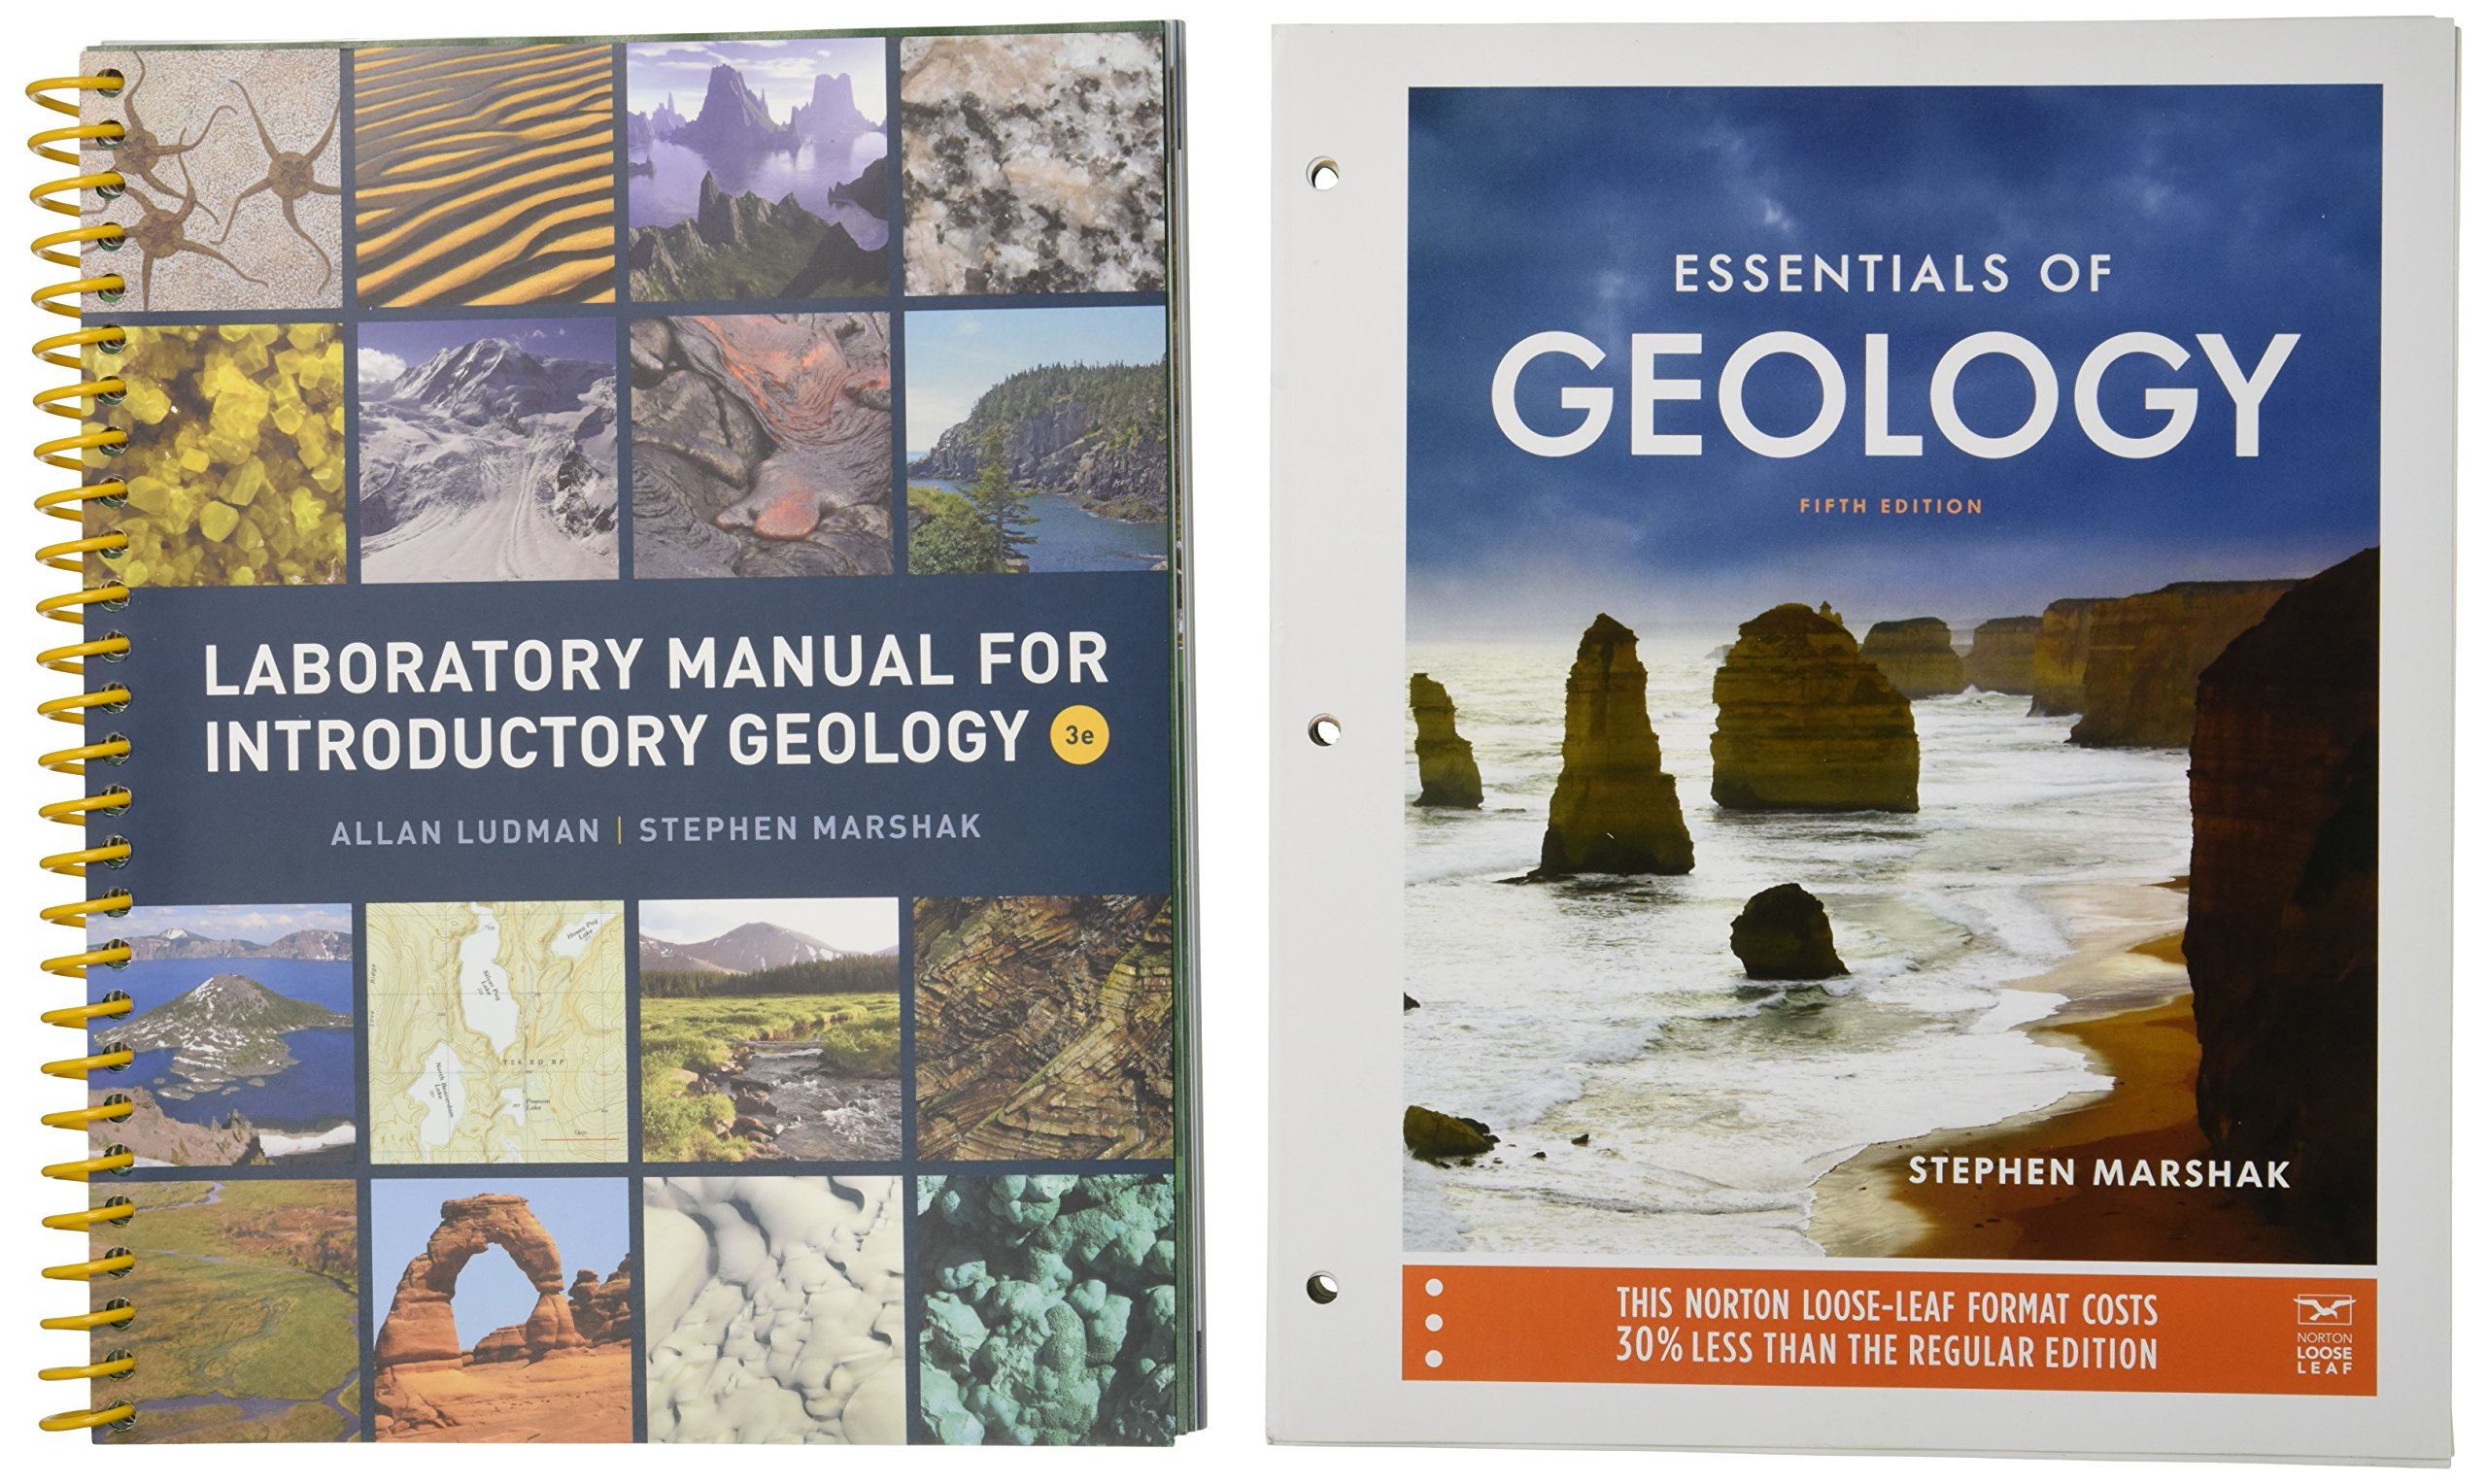 Essentials of Geology and Laboratory Manual for Introductory Geology:  Amazon.co.uk: Allan Ludman, Stephen Marshak: 9780393607406: Books